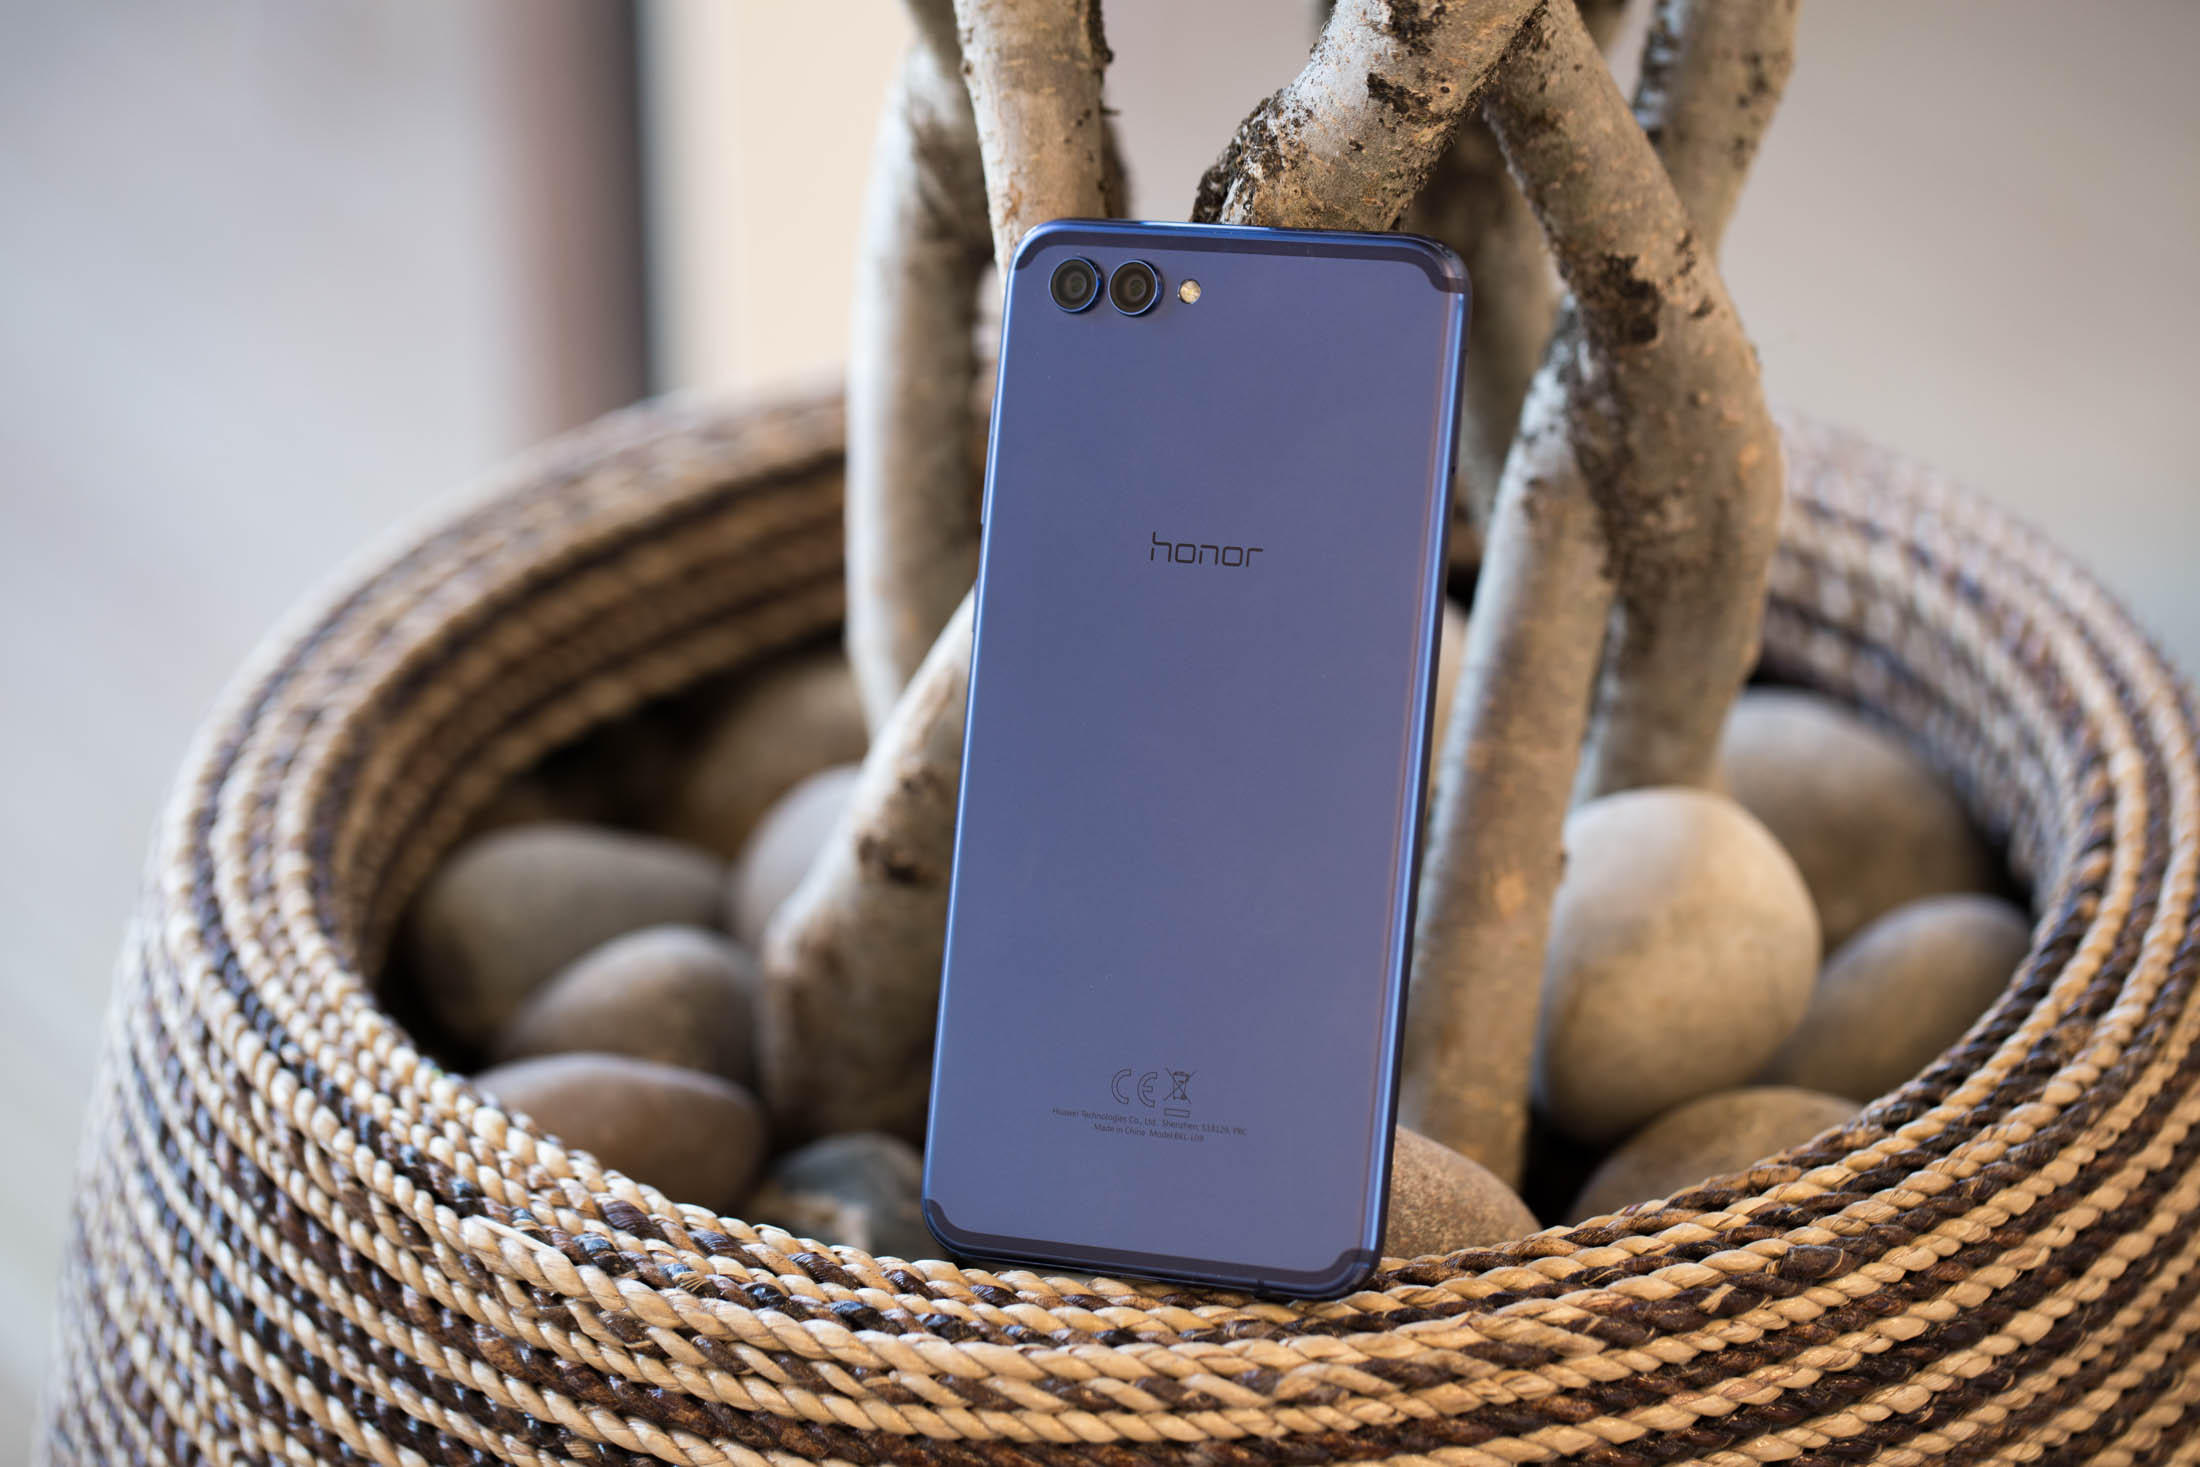 Huawei Honor View 10